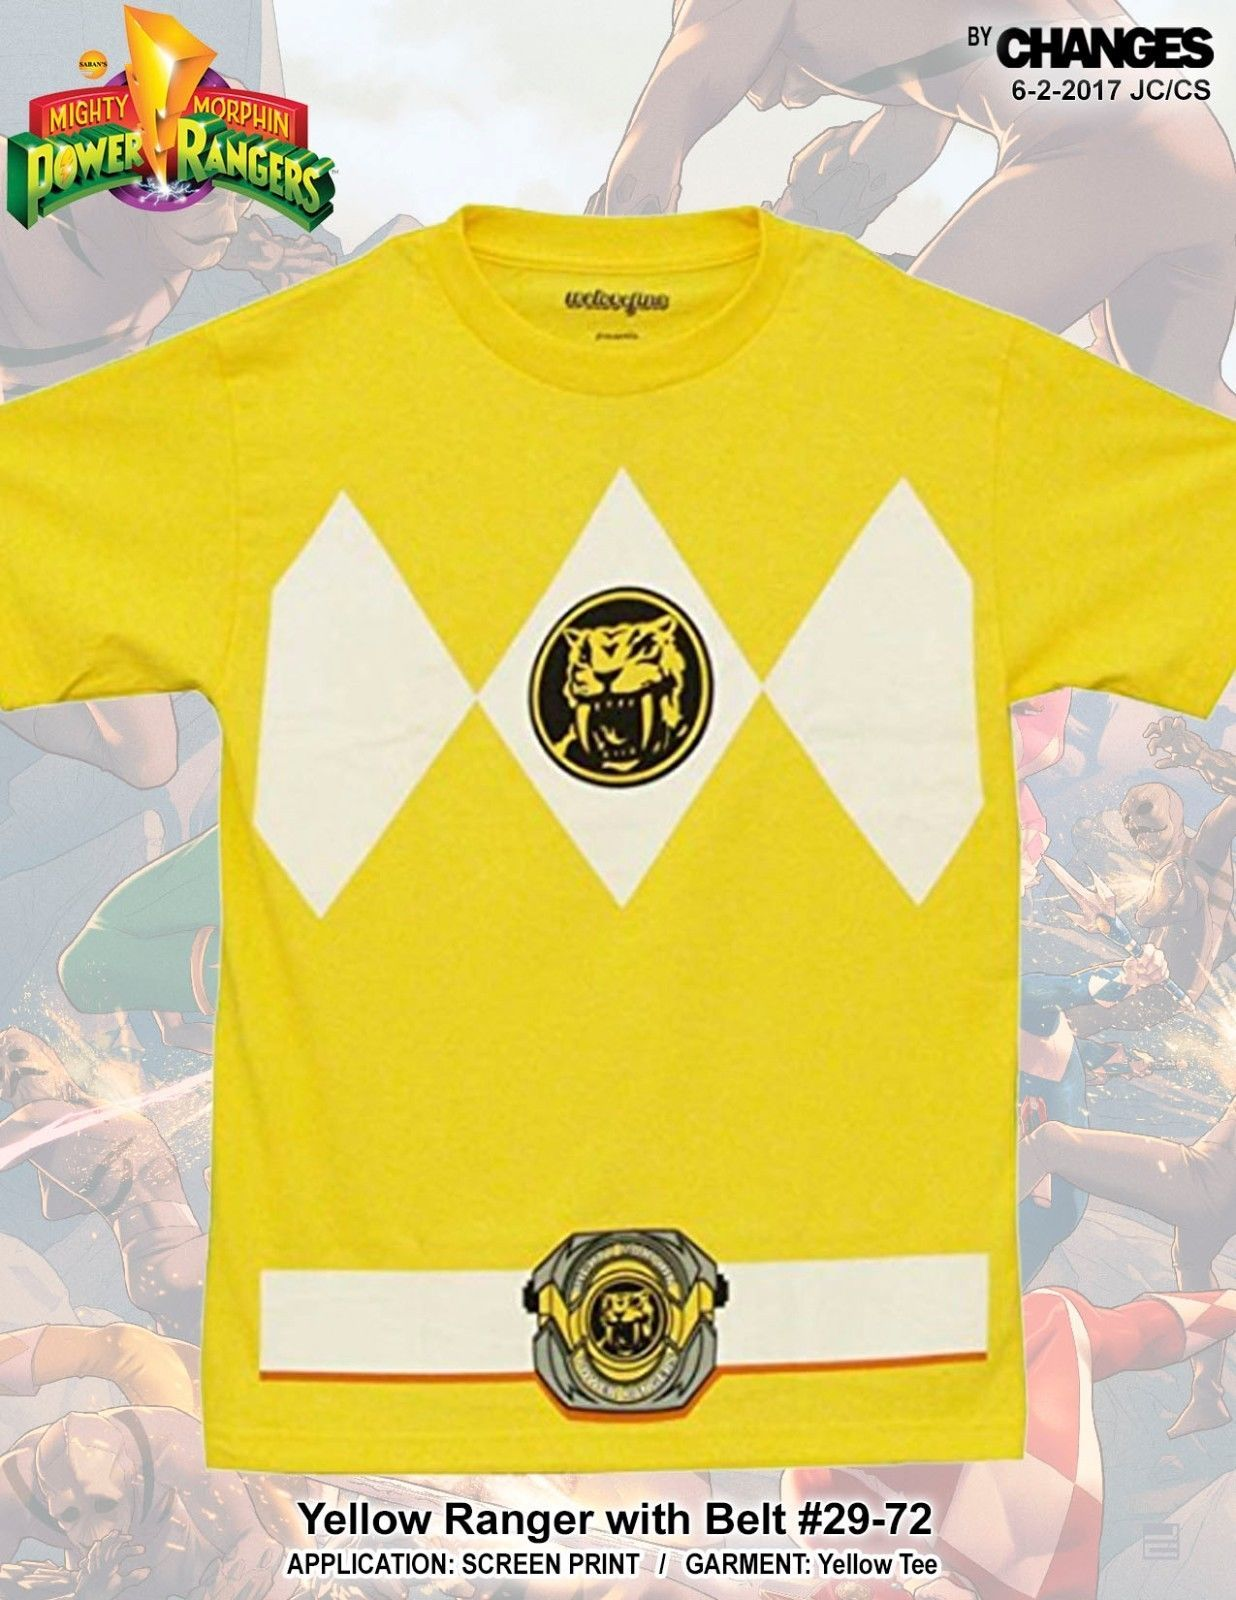 Power Rangers Amarillo Ranger Superhéroe Disfraz Halloween Camiseta